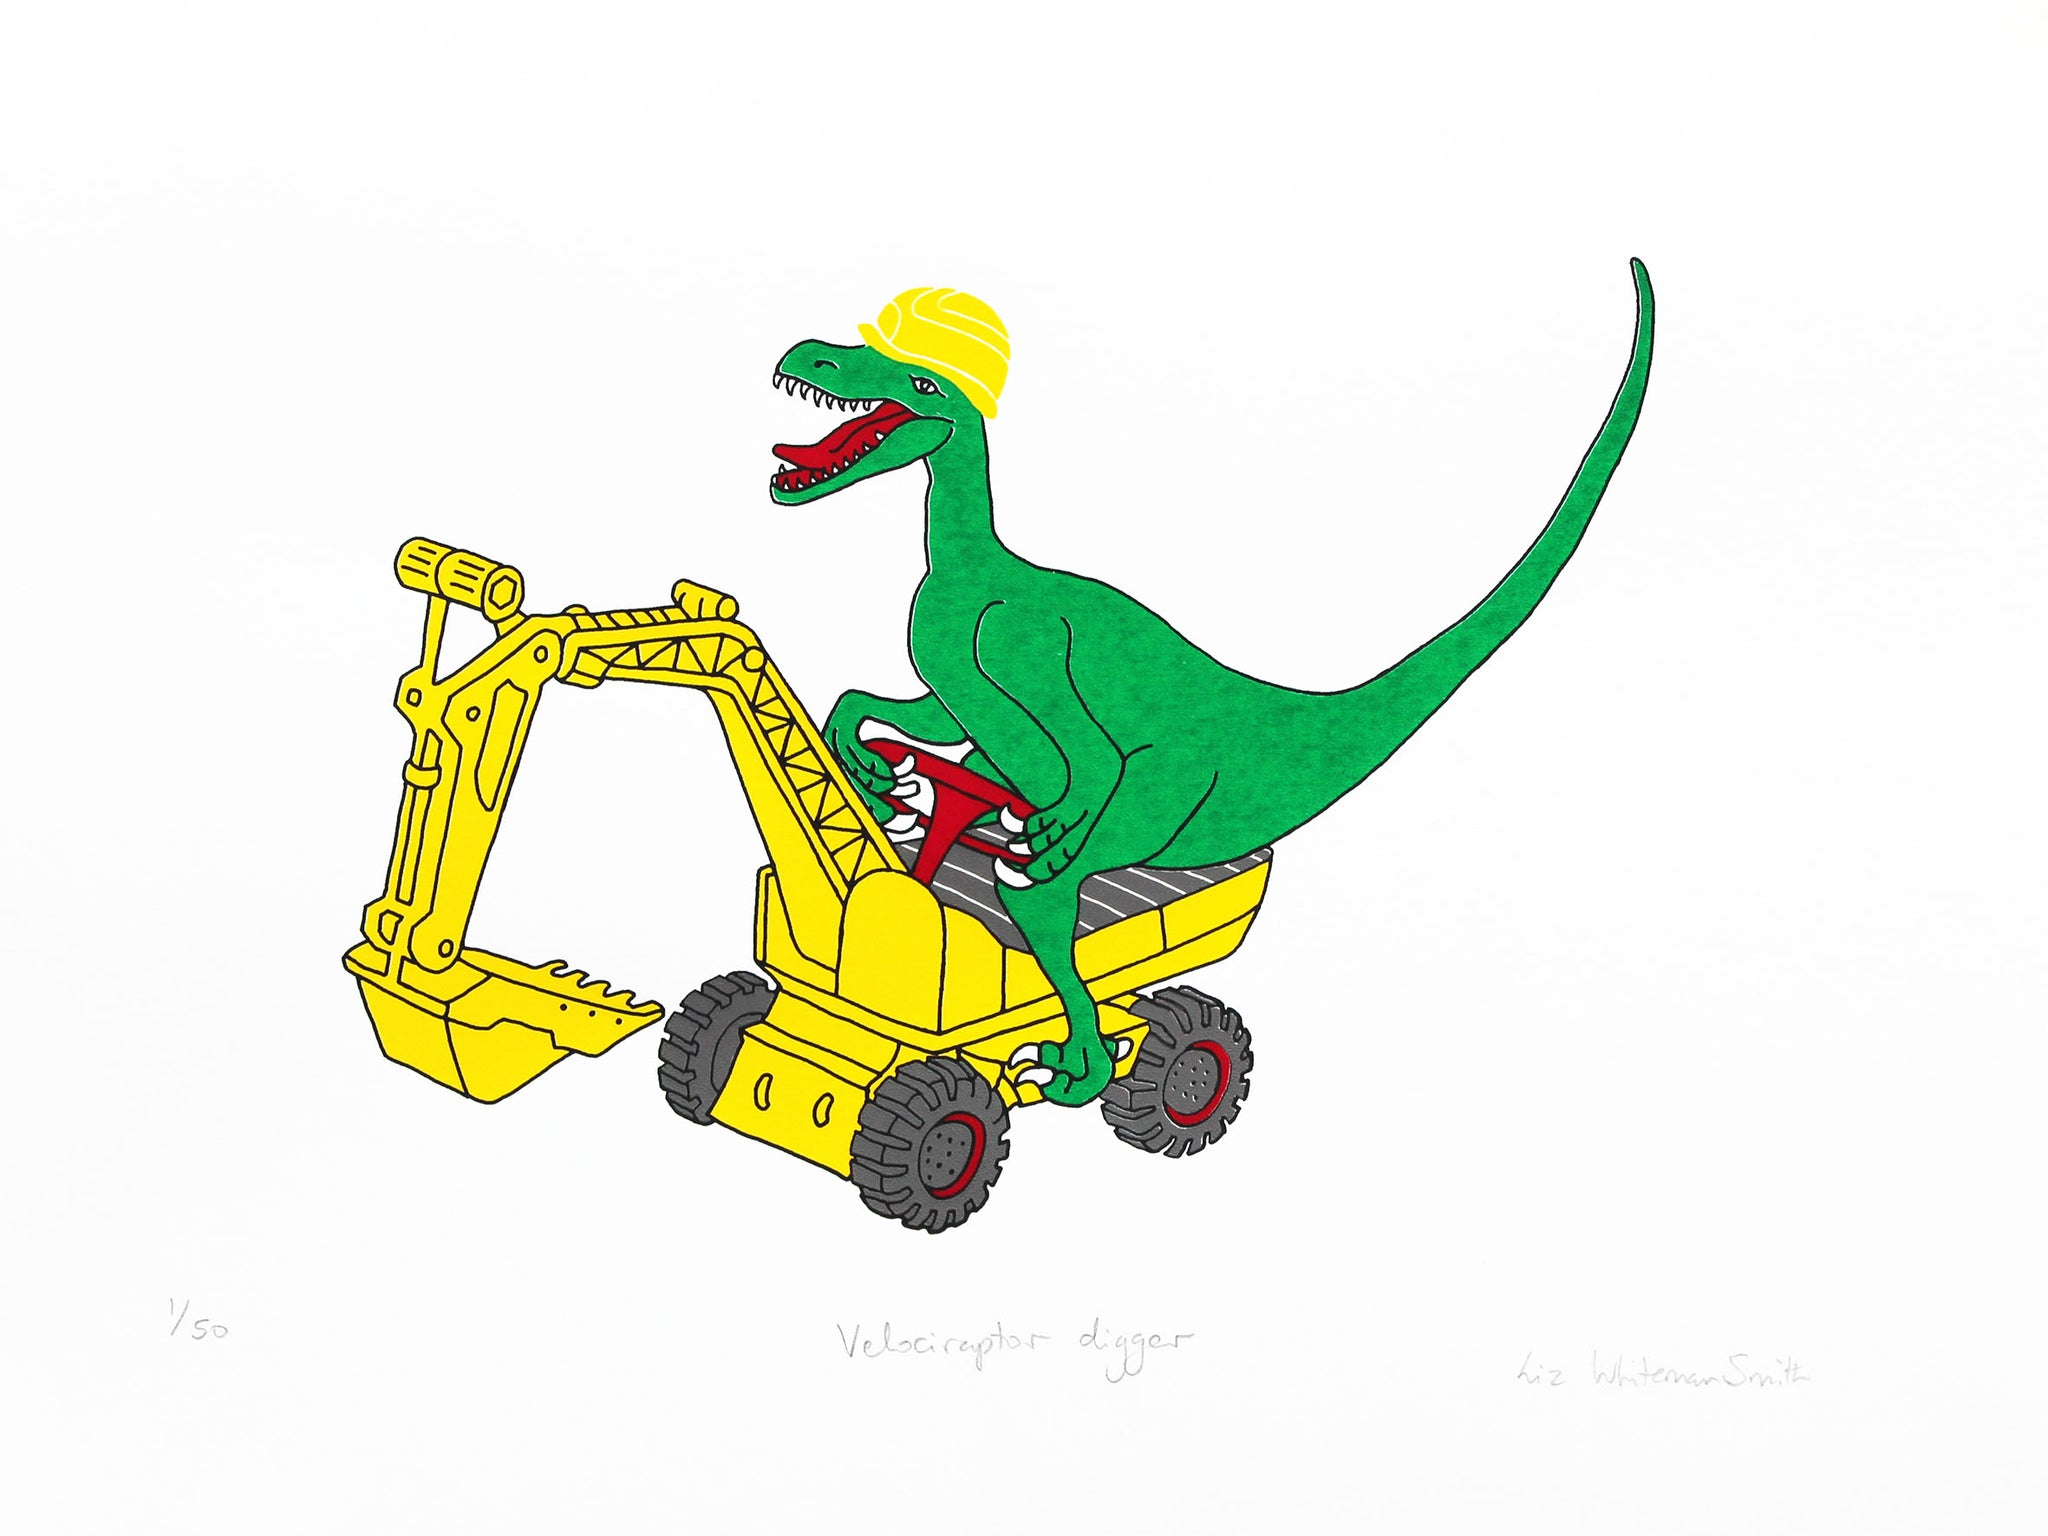 Velociraptor on yellow digger 5 colour screen print on Heritage white 315 gsm, 40x30cm Limited edition of 50